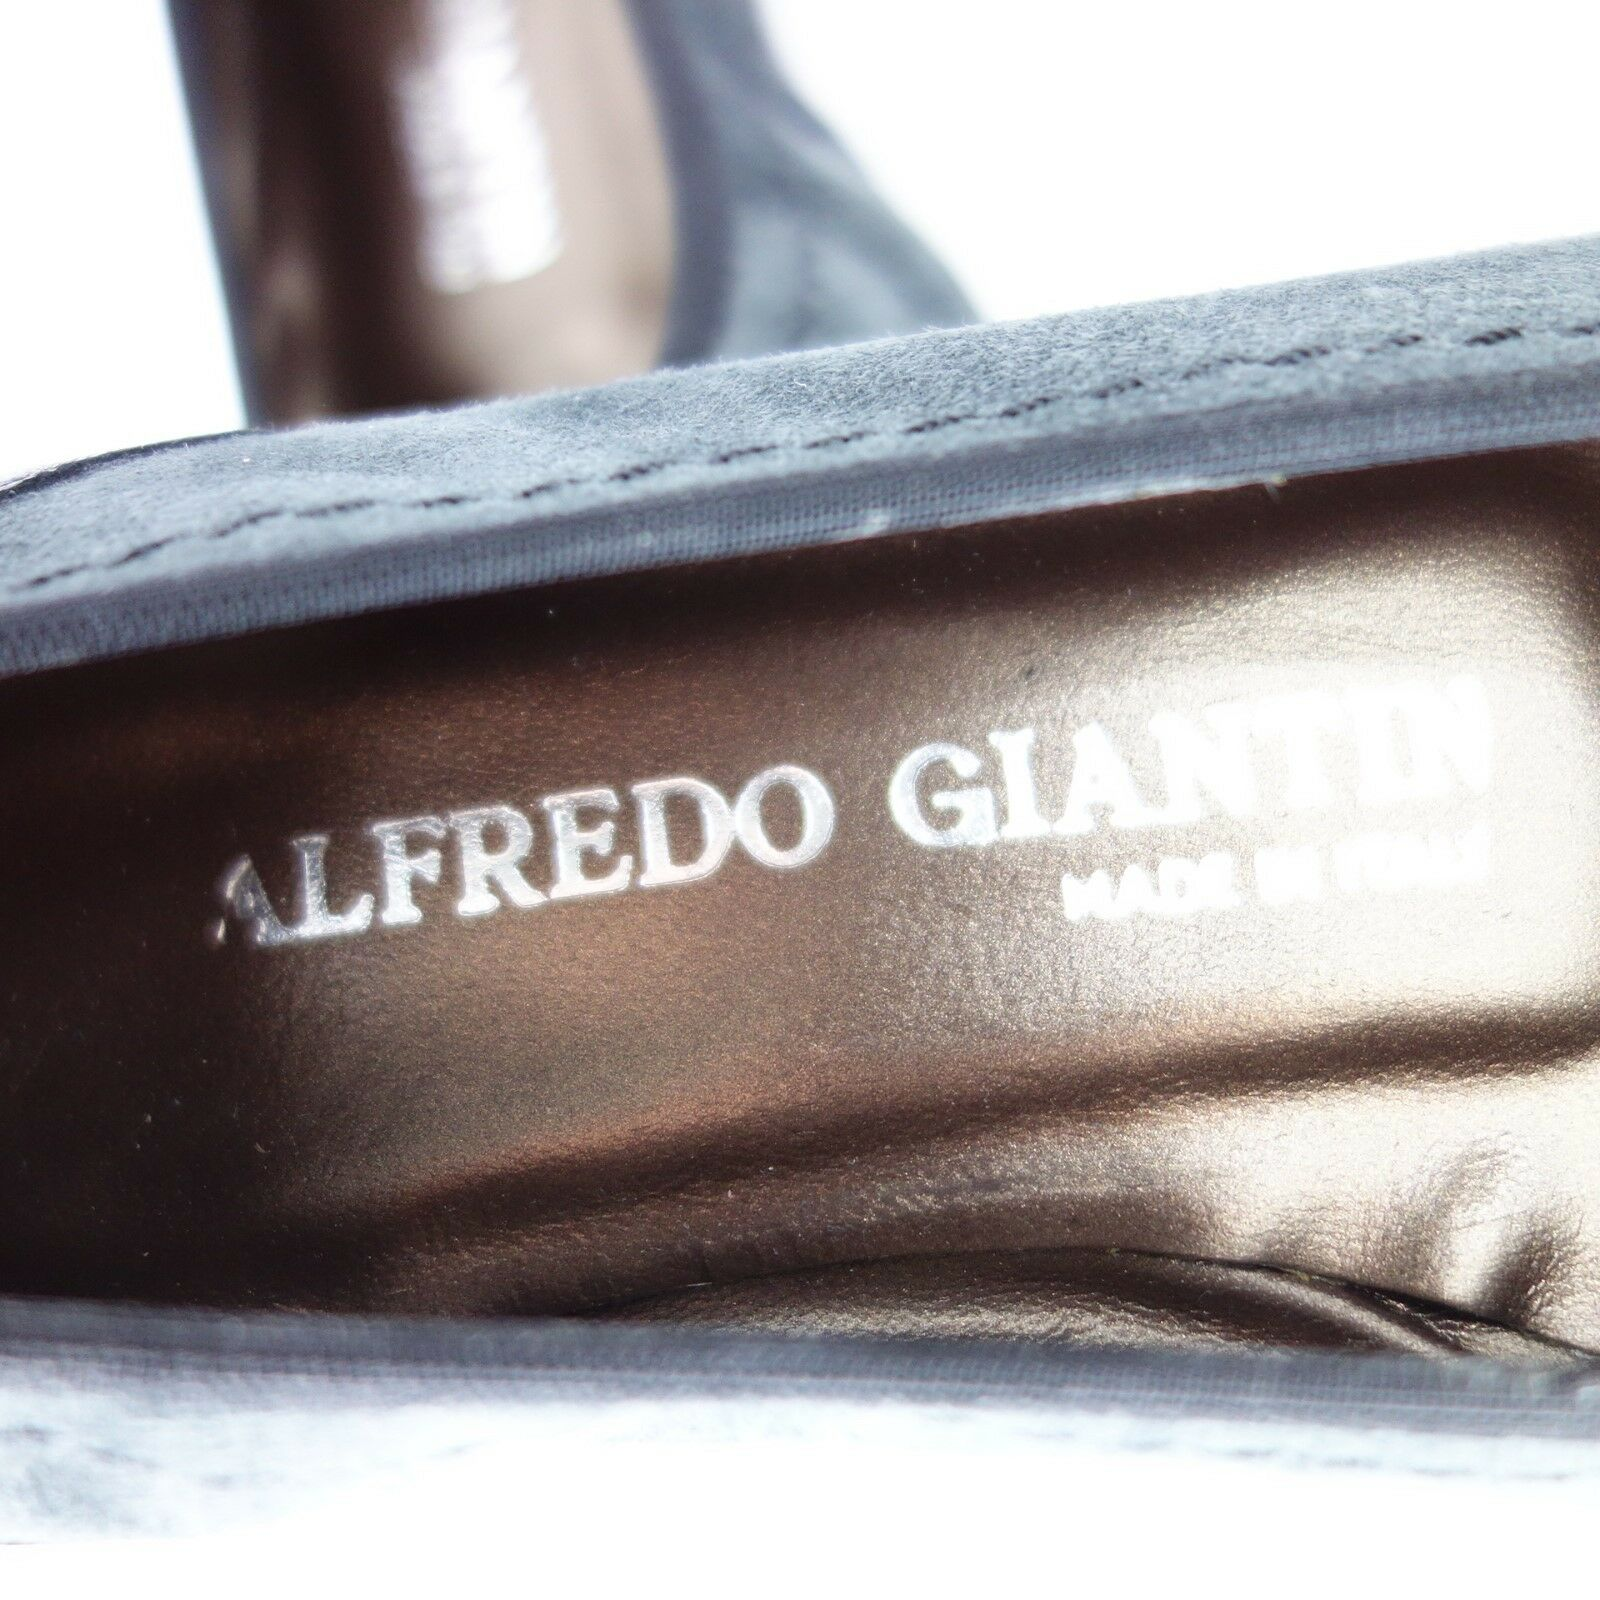 Alfredo Giantin Ladies Boots Ballerinas Leather Leather Leather Suede Size 36 round Np 139 New 5fe25e